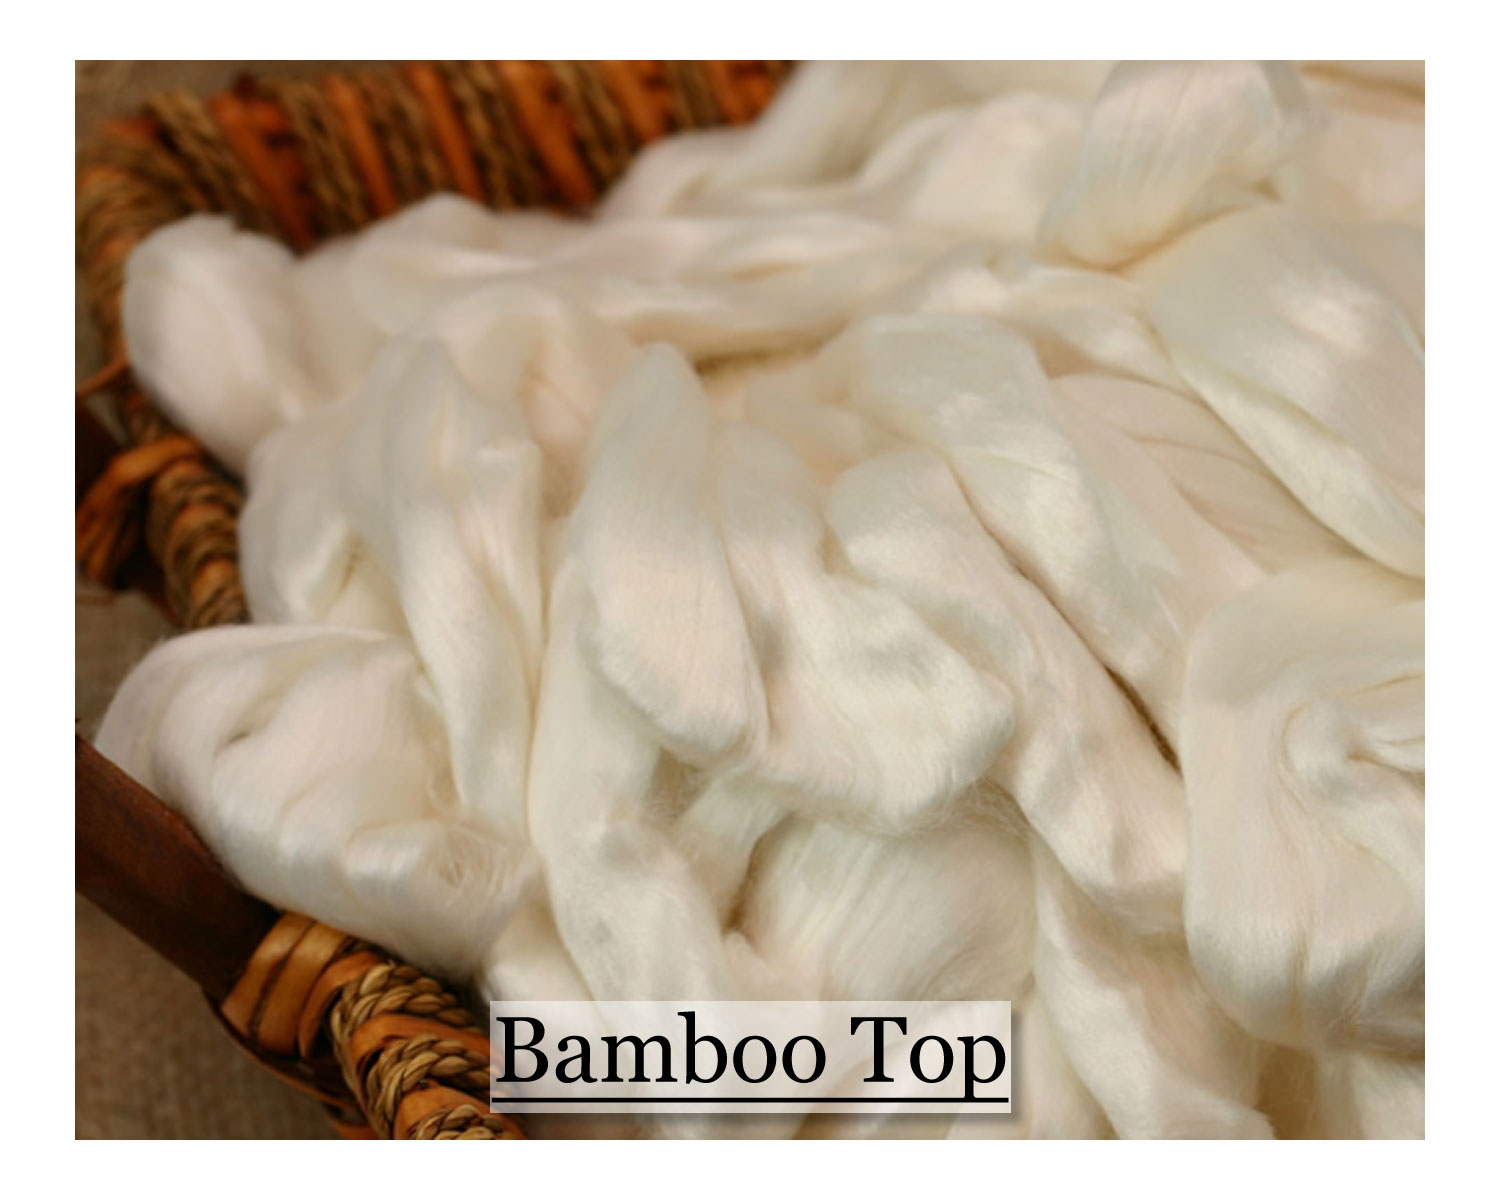 Bamboo Top - 1, 2 or 4 oz